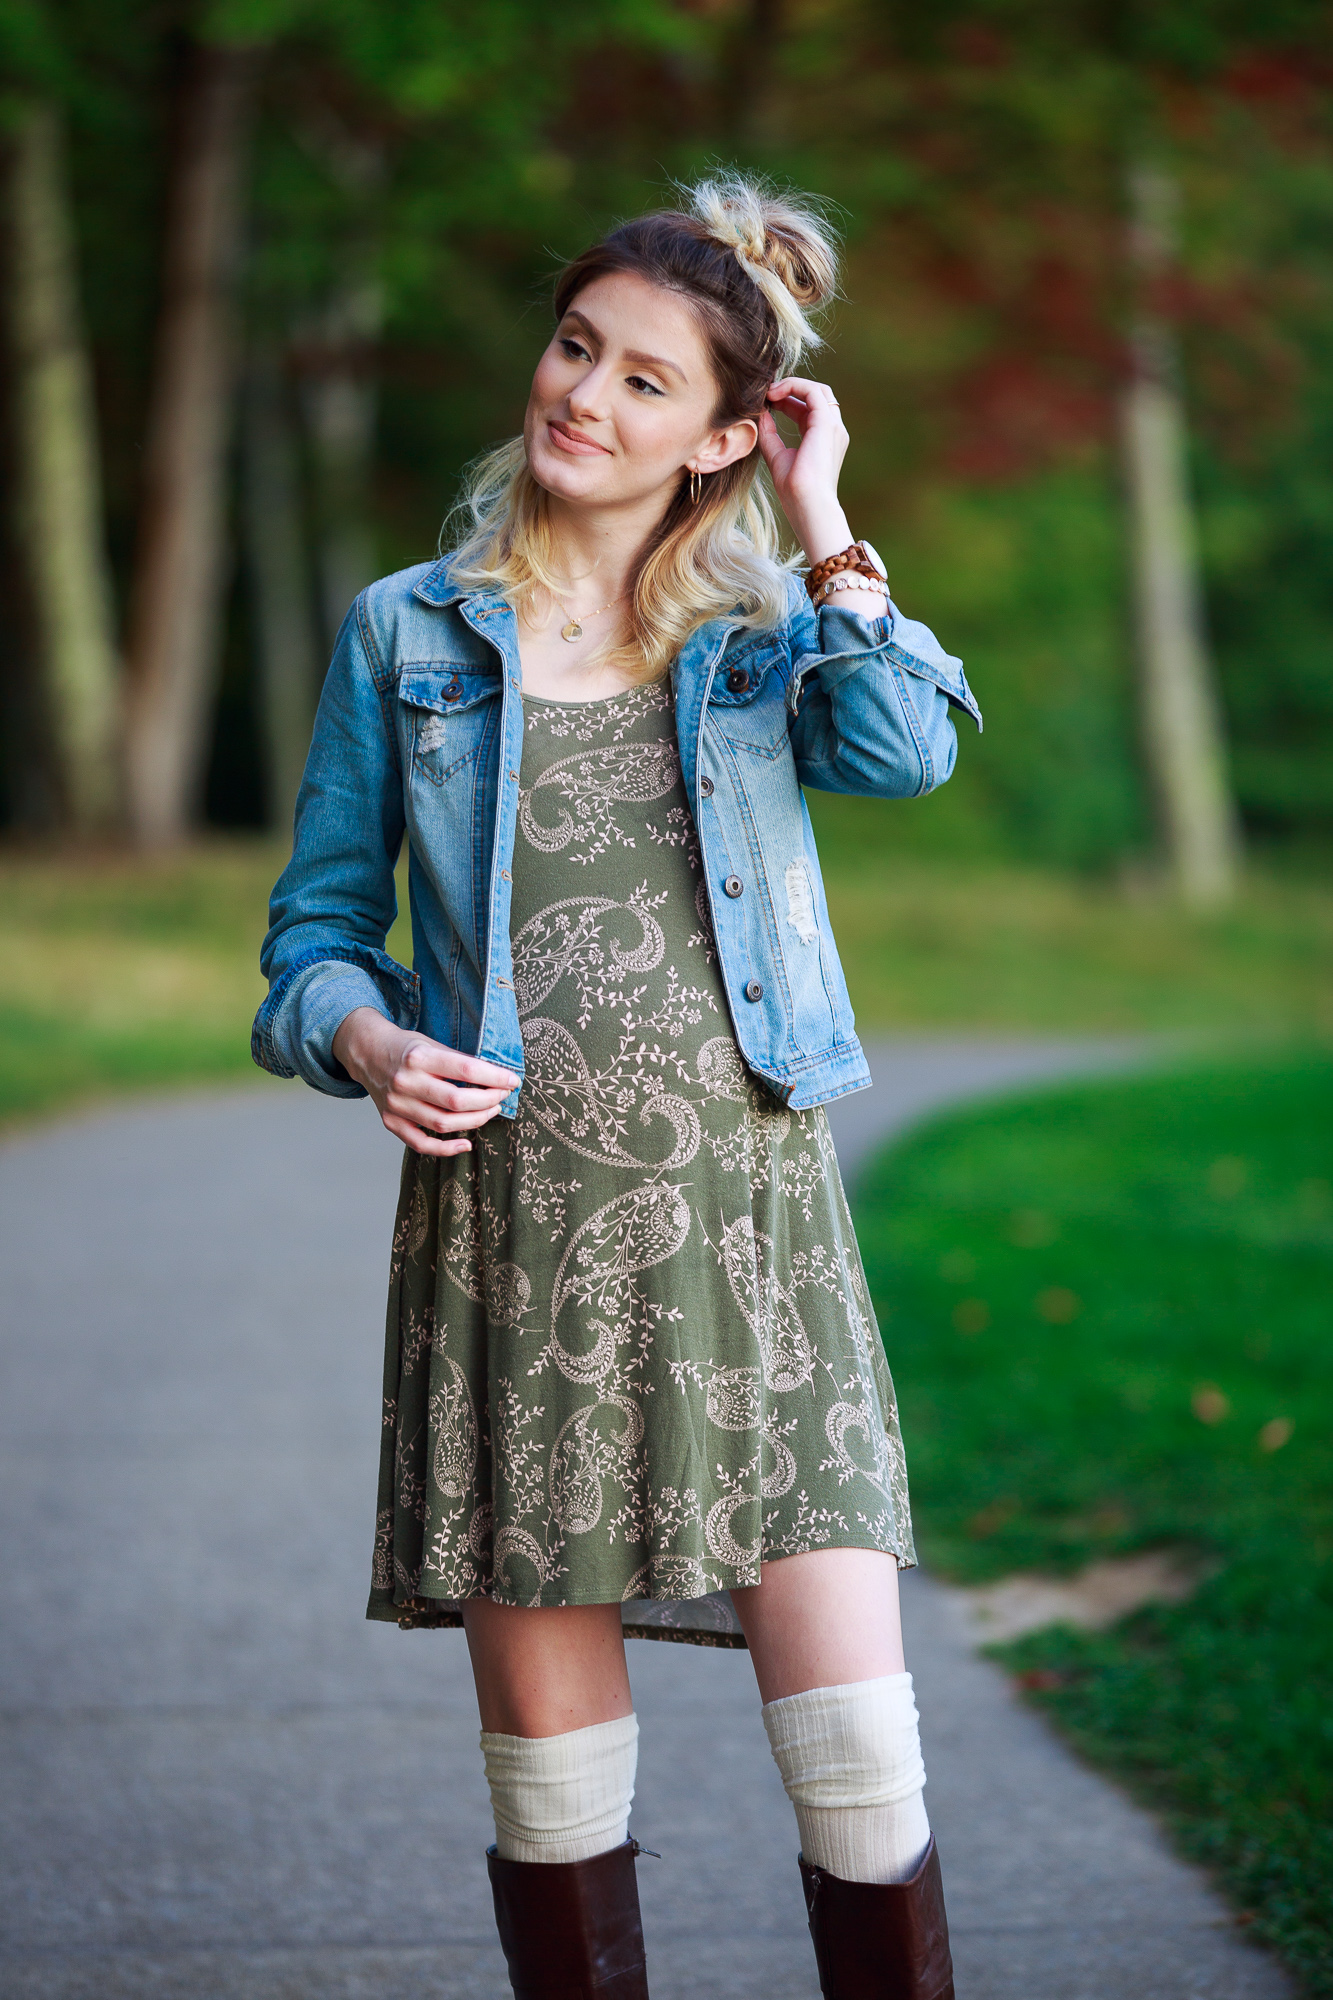 Lifestyle and fashion blogger Jessica Linn wearing a Charlotte Russe olive colored dress with a neutral paisley pattern, a denim jacket, thigh high socks, and Ralph Lauren boots. Perfect fall maternity outfit!